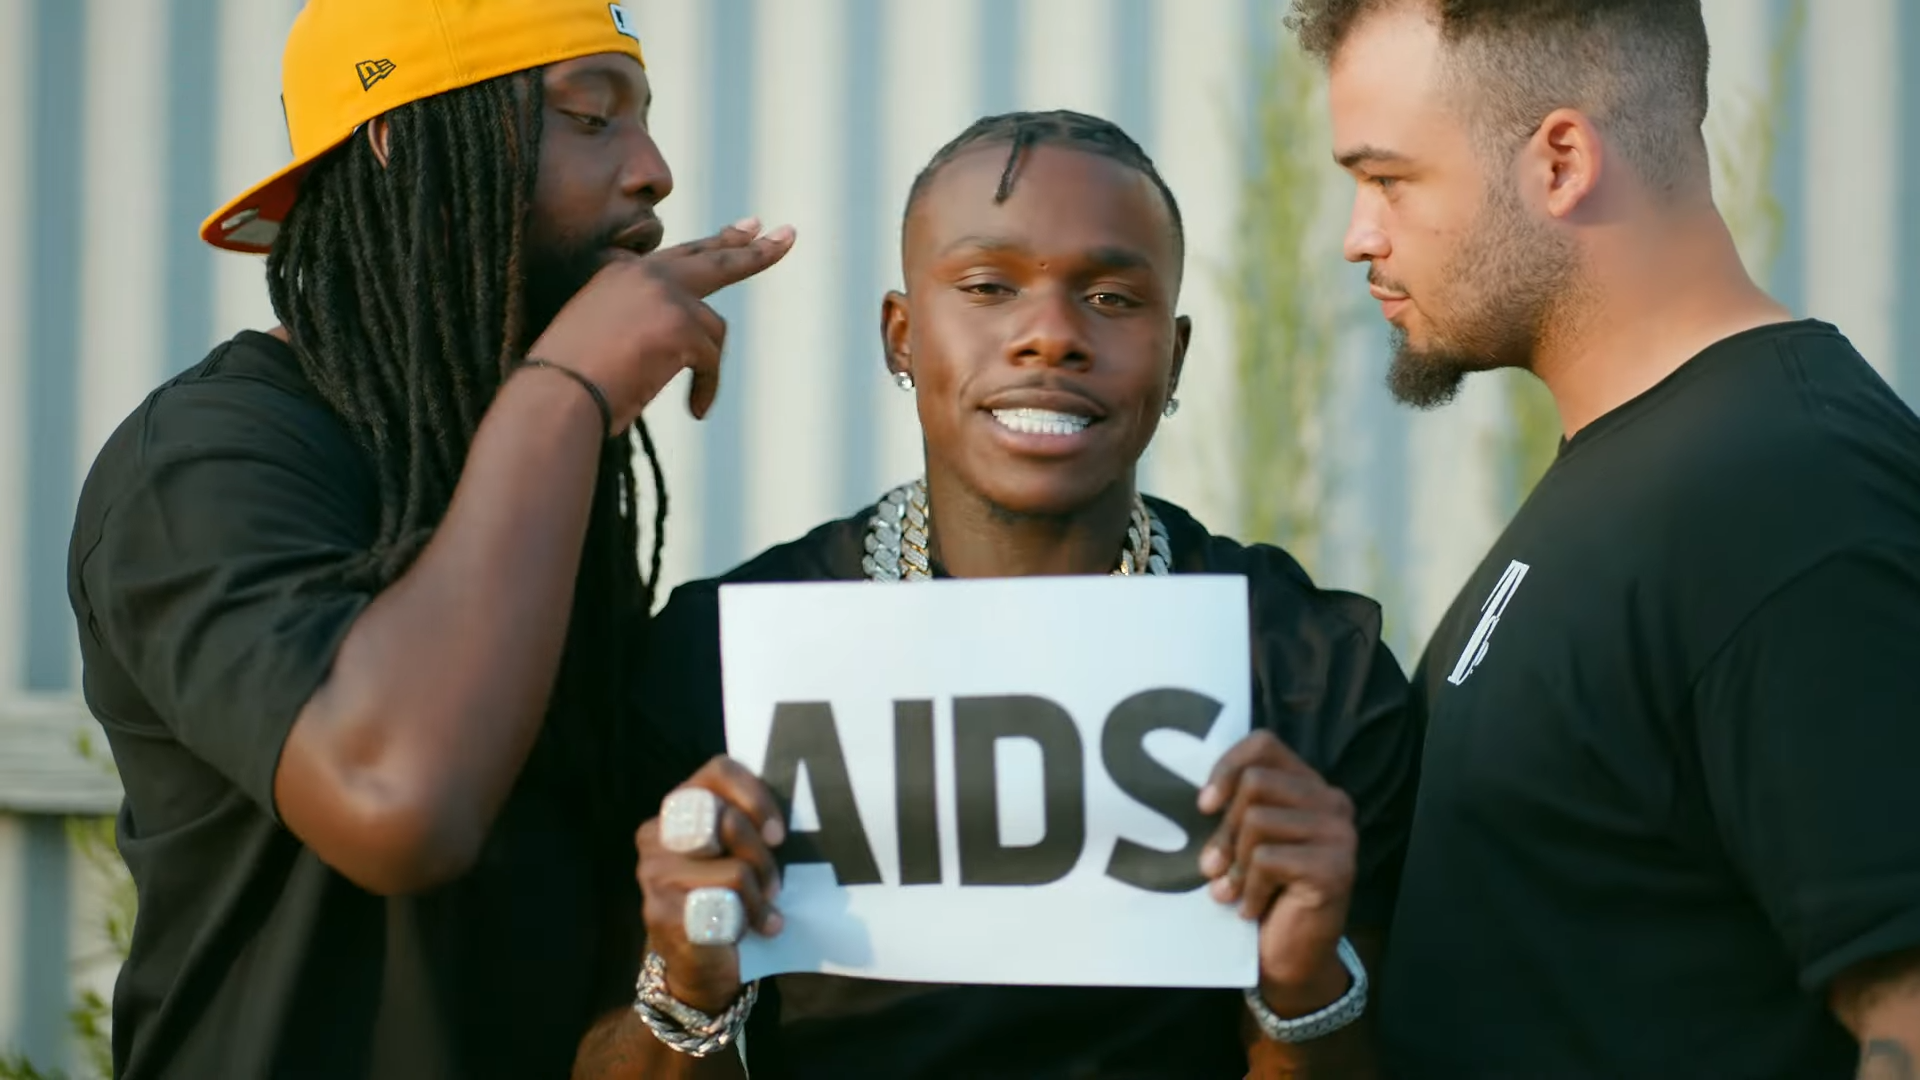 DaBaby drops new song with AIDS insults & tells LGBTQ people to stop hating him